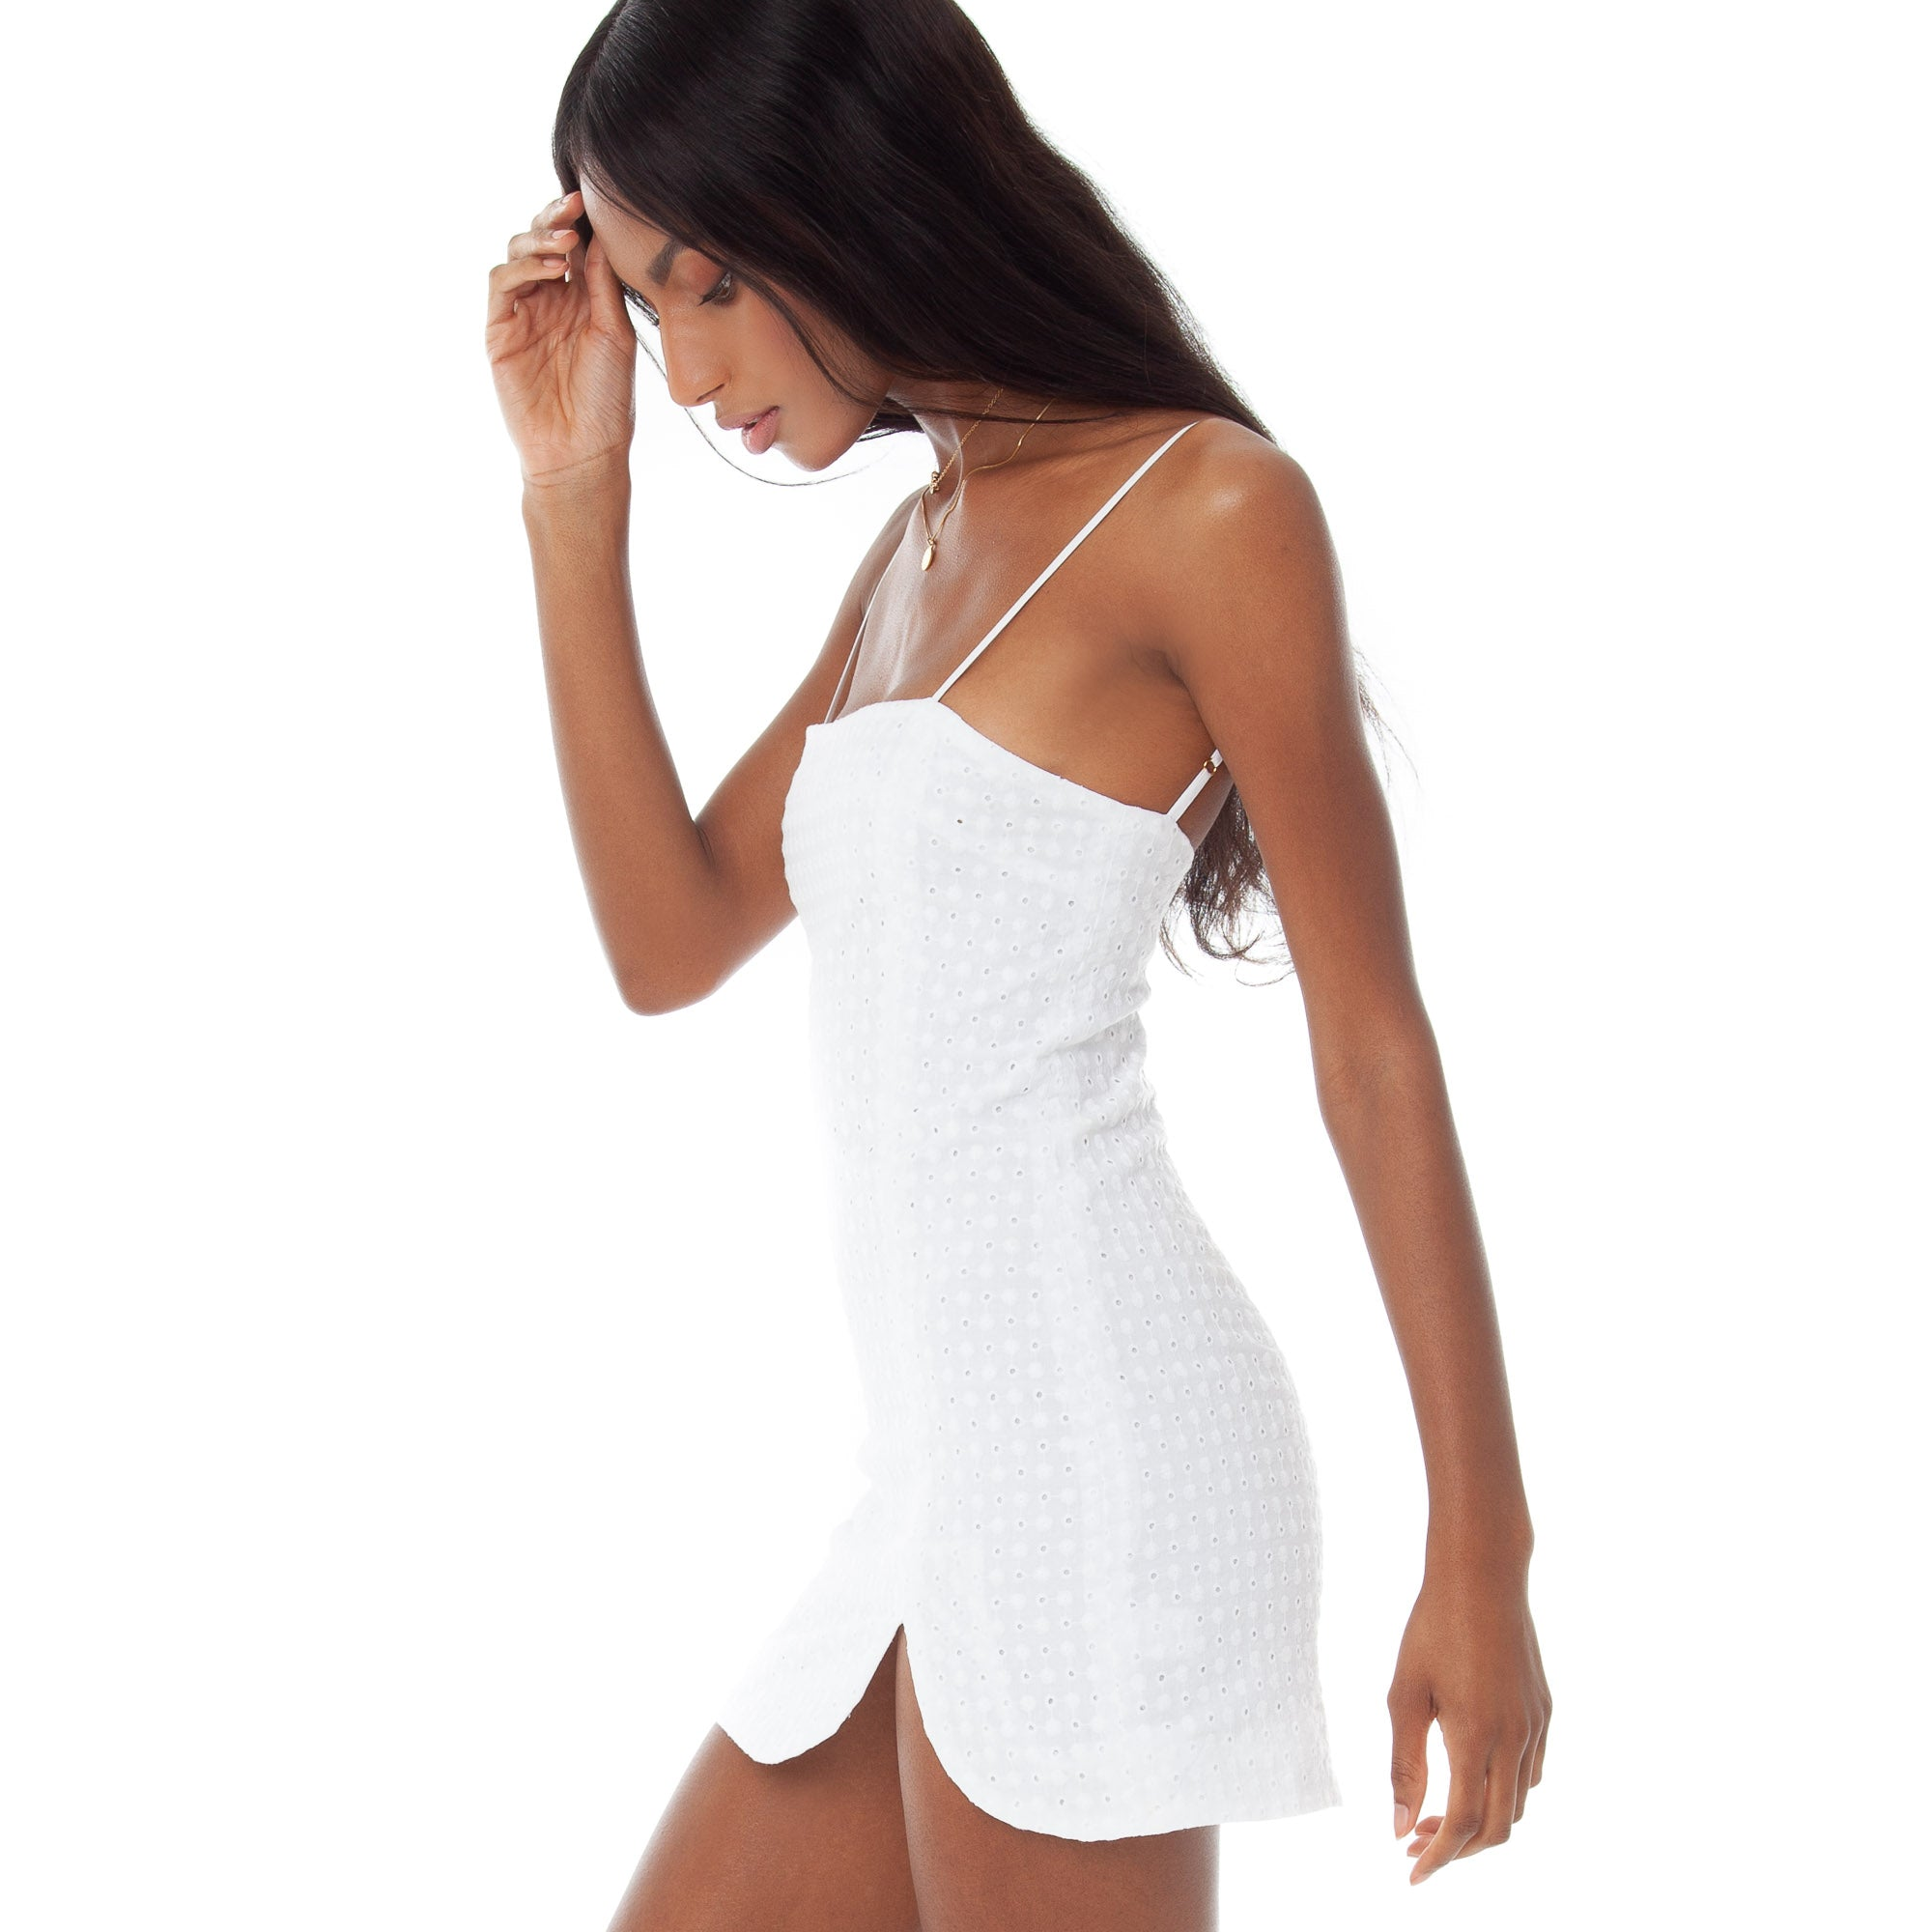 Are You Am I - Chiaki Eyelet Dress